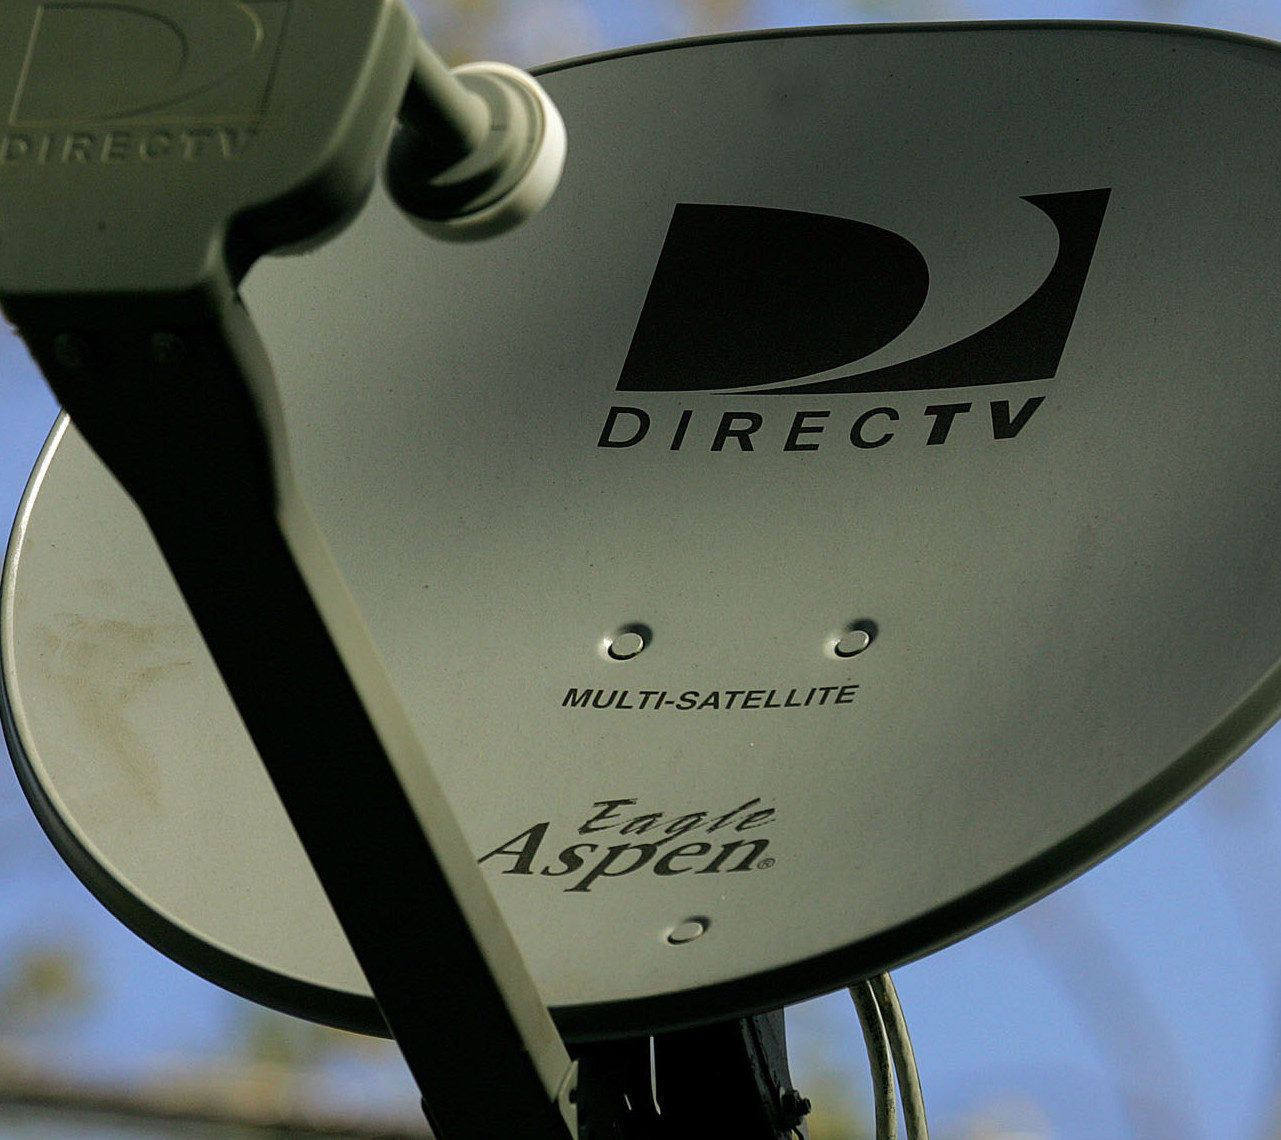 FTC Charges DirecTV With False Advertising Over Two-year